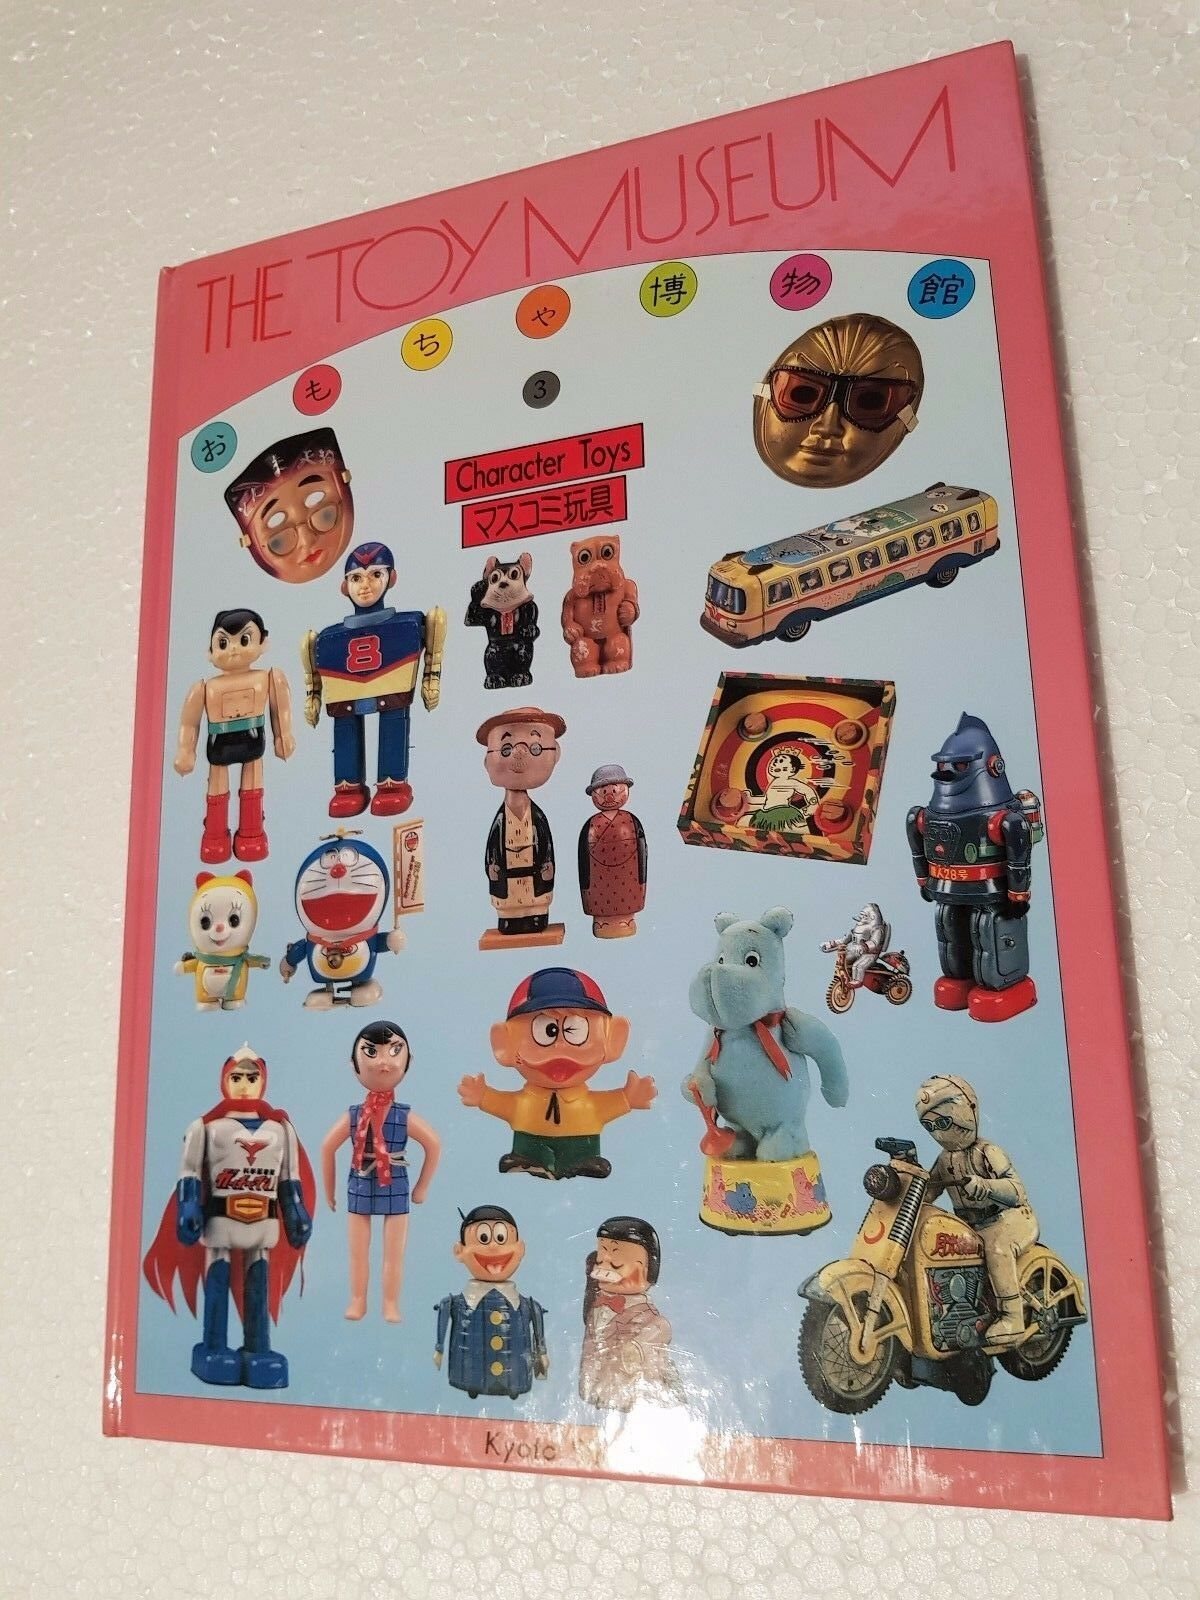 LIBRO THE TOY MUSEUM CHARACTER TOYS - KYOTO SHOIN -